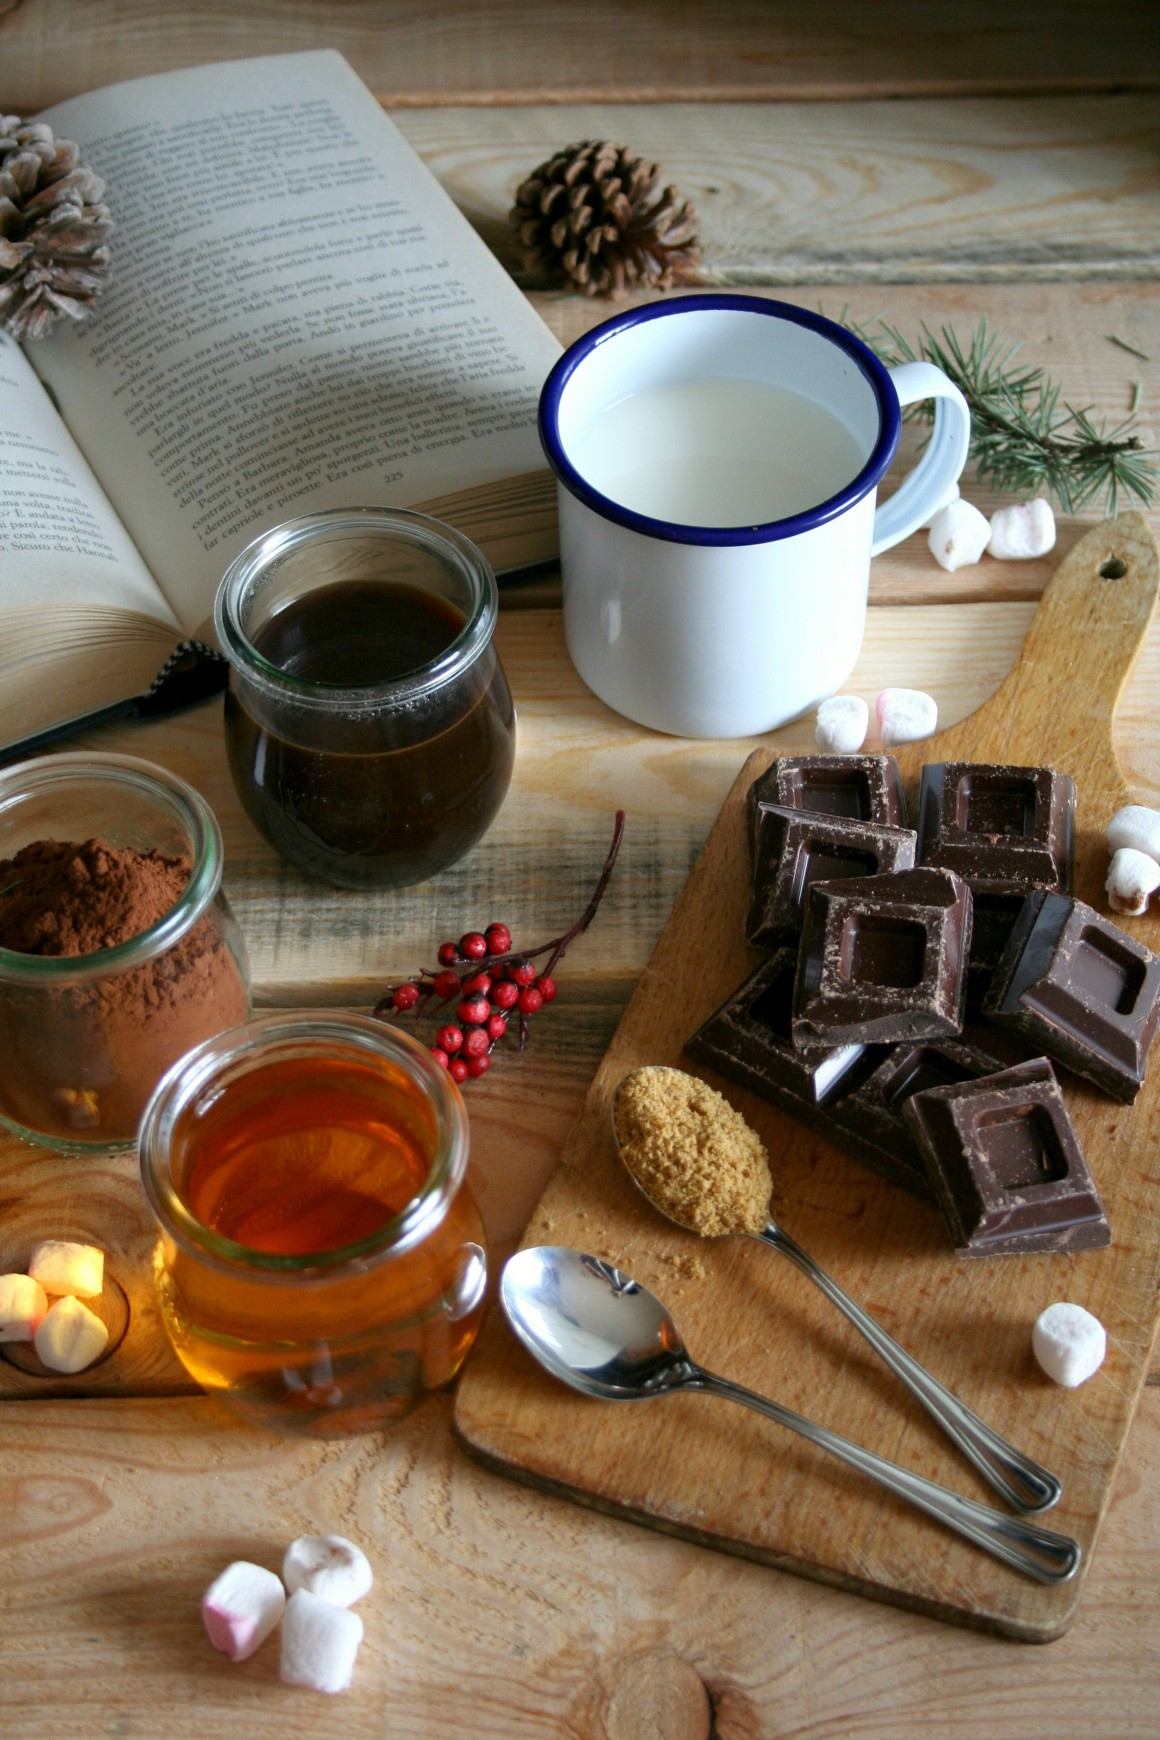 cioccolata calda ingredienti